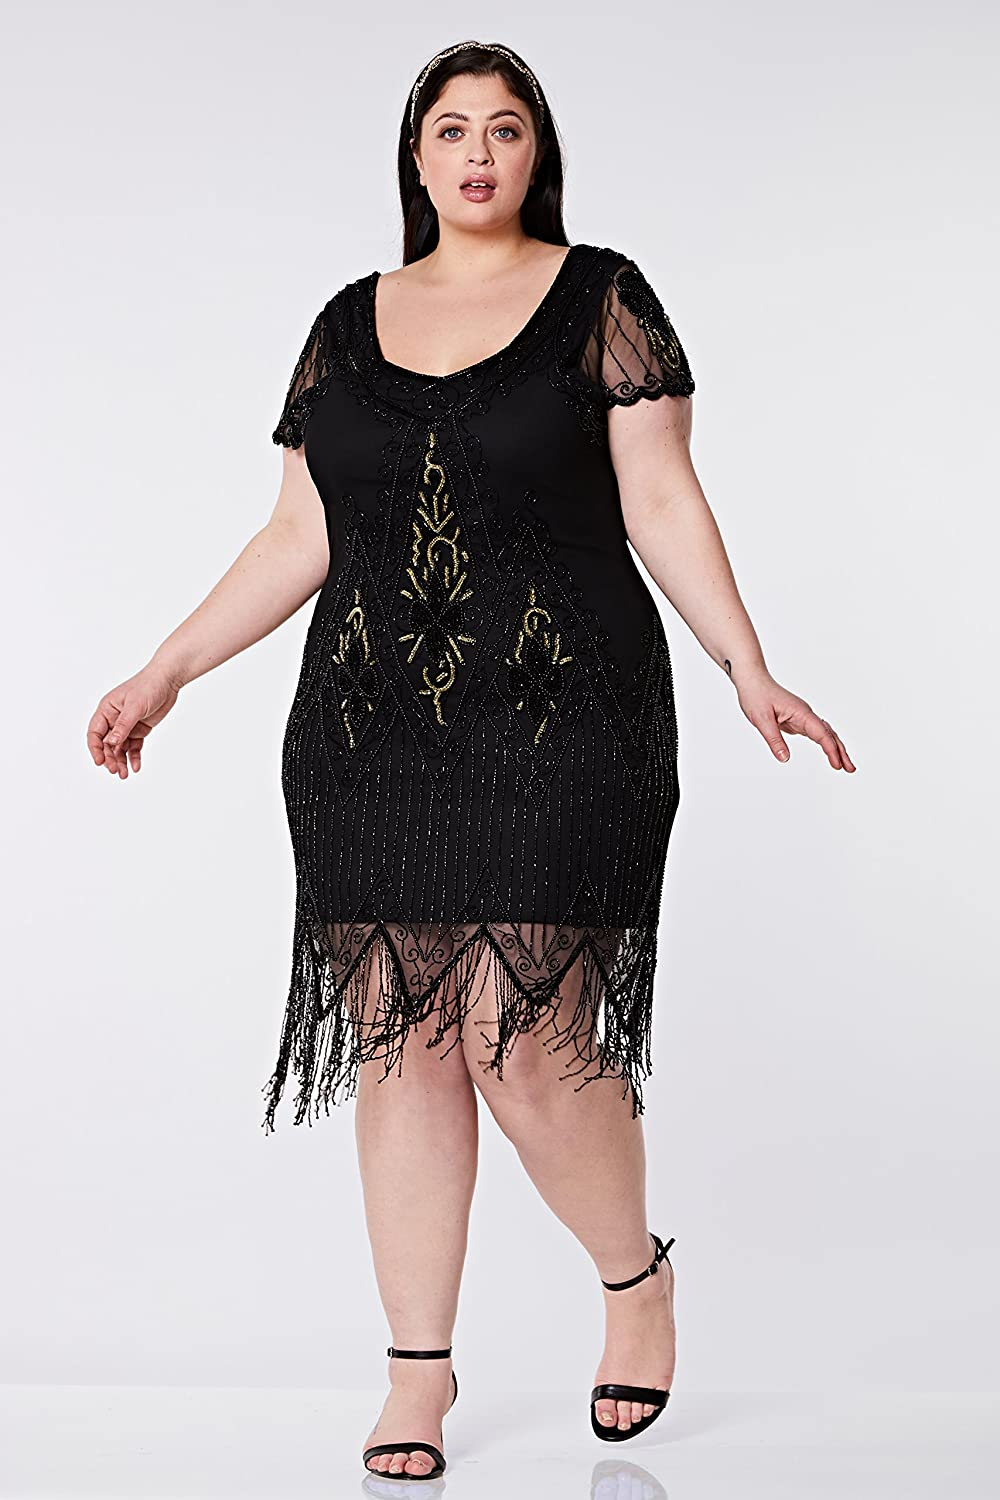 1920s Evening Dresses & Formal Gowns gatsbylady london Annette Vintage Inspired Fringe Flapper Dress in Black Gold $124.86 AT vintagedancer.com